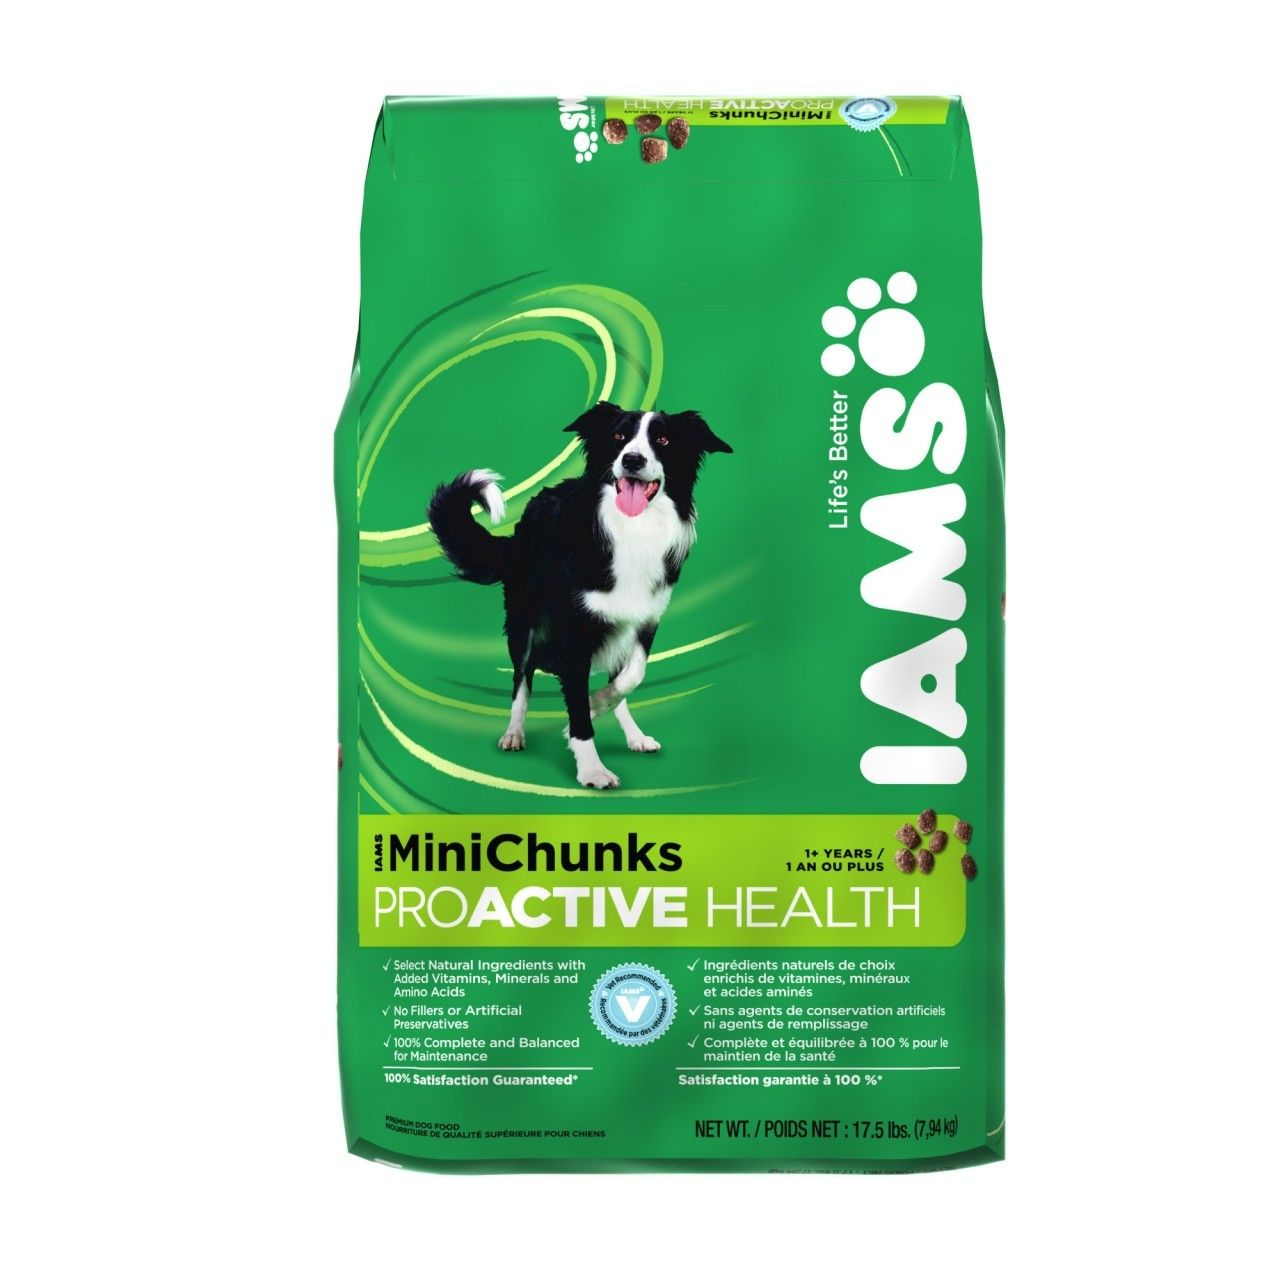 Pet Food Packaging For More Information Visit Us At Www